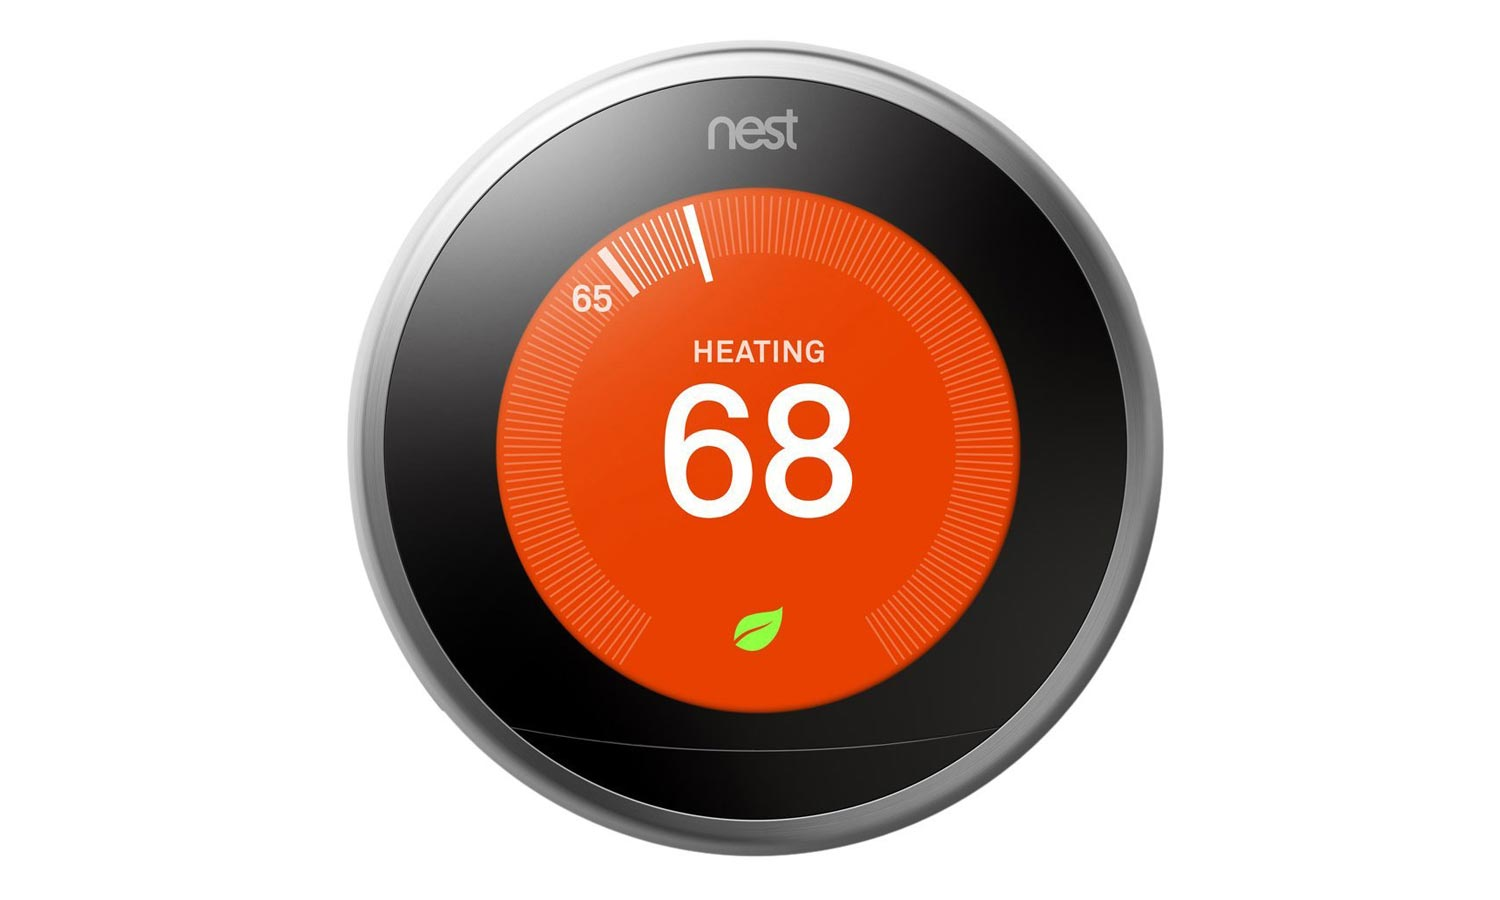 Best Smart Thermostat 2019 - Reviews, Ratings and Comparisons